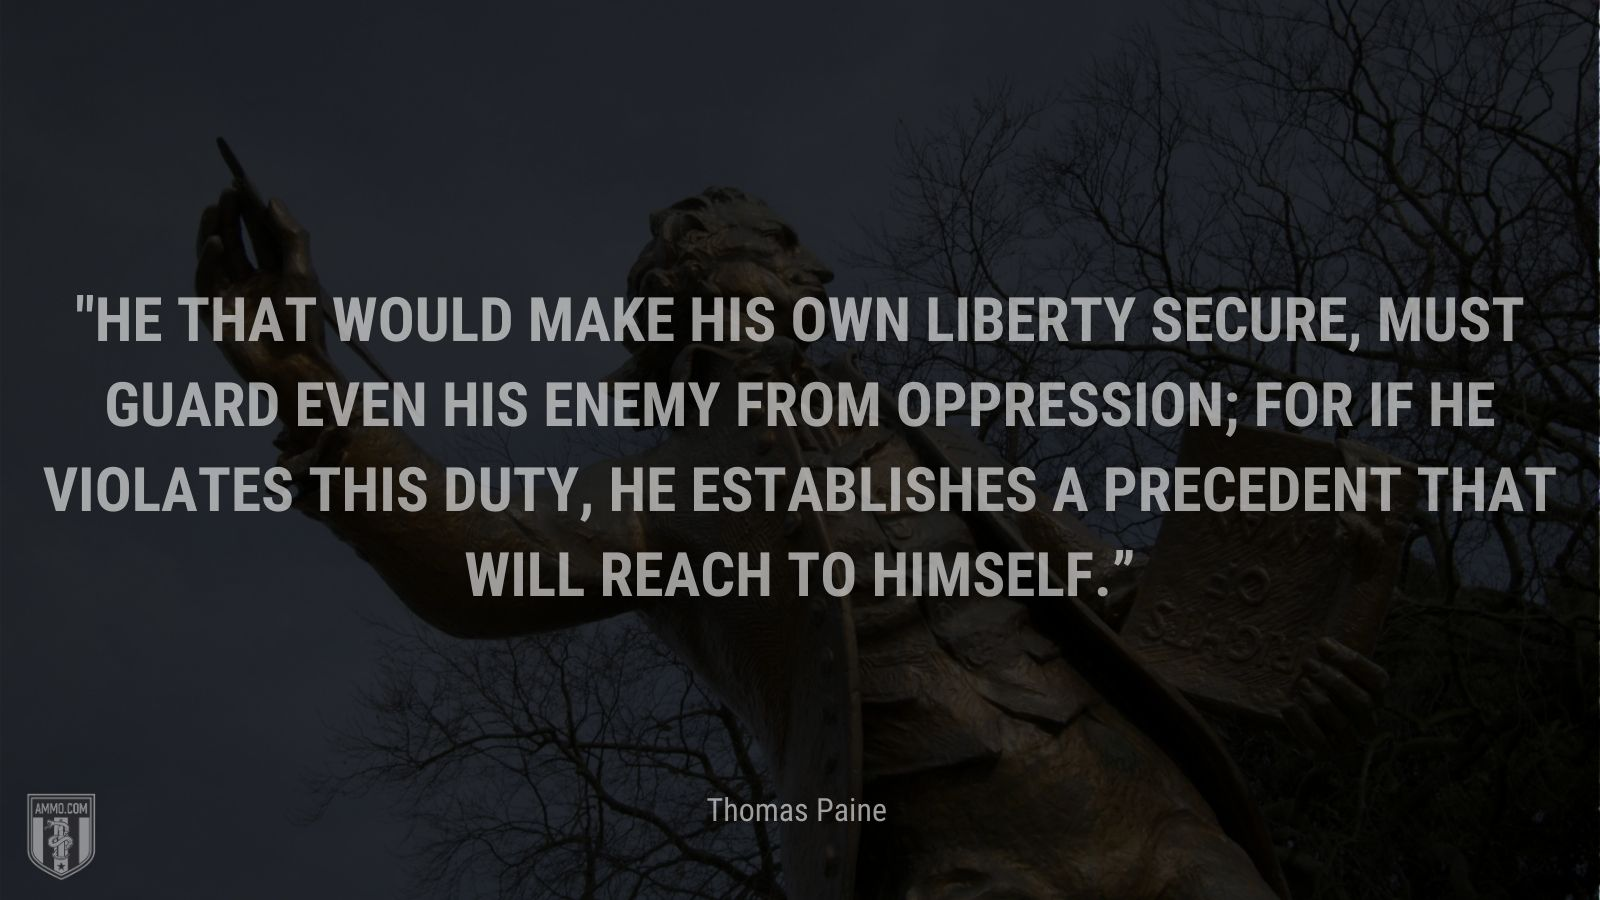 """""""He that would make his own liberty secure, must guard even his enemy from oppression; for if he violates this duty, he establishes a precedent that will reach to himself."""" - Thomas Paine"""